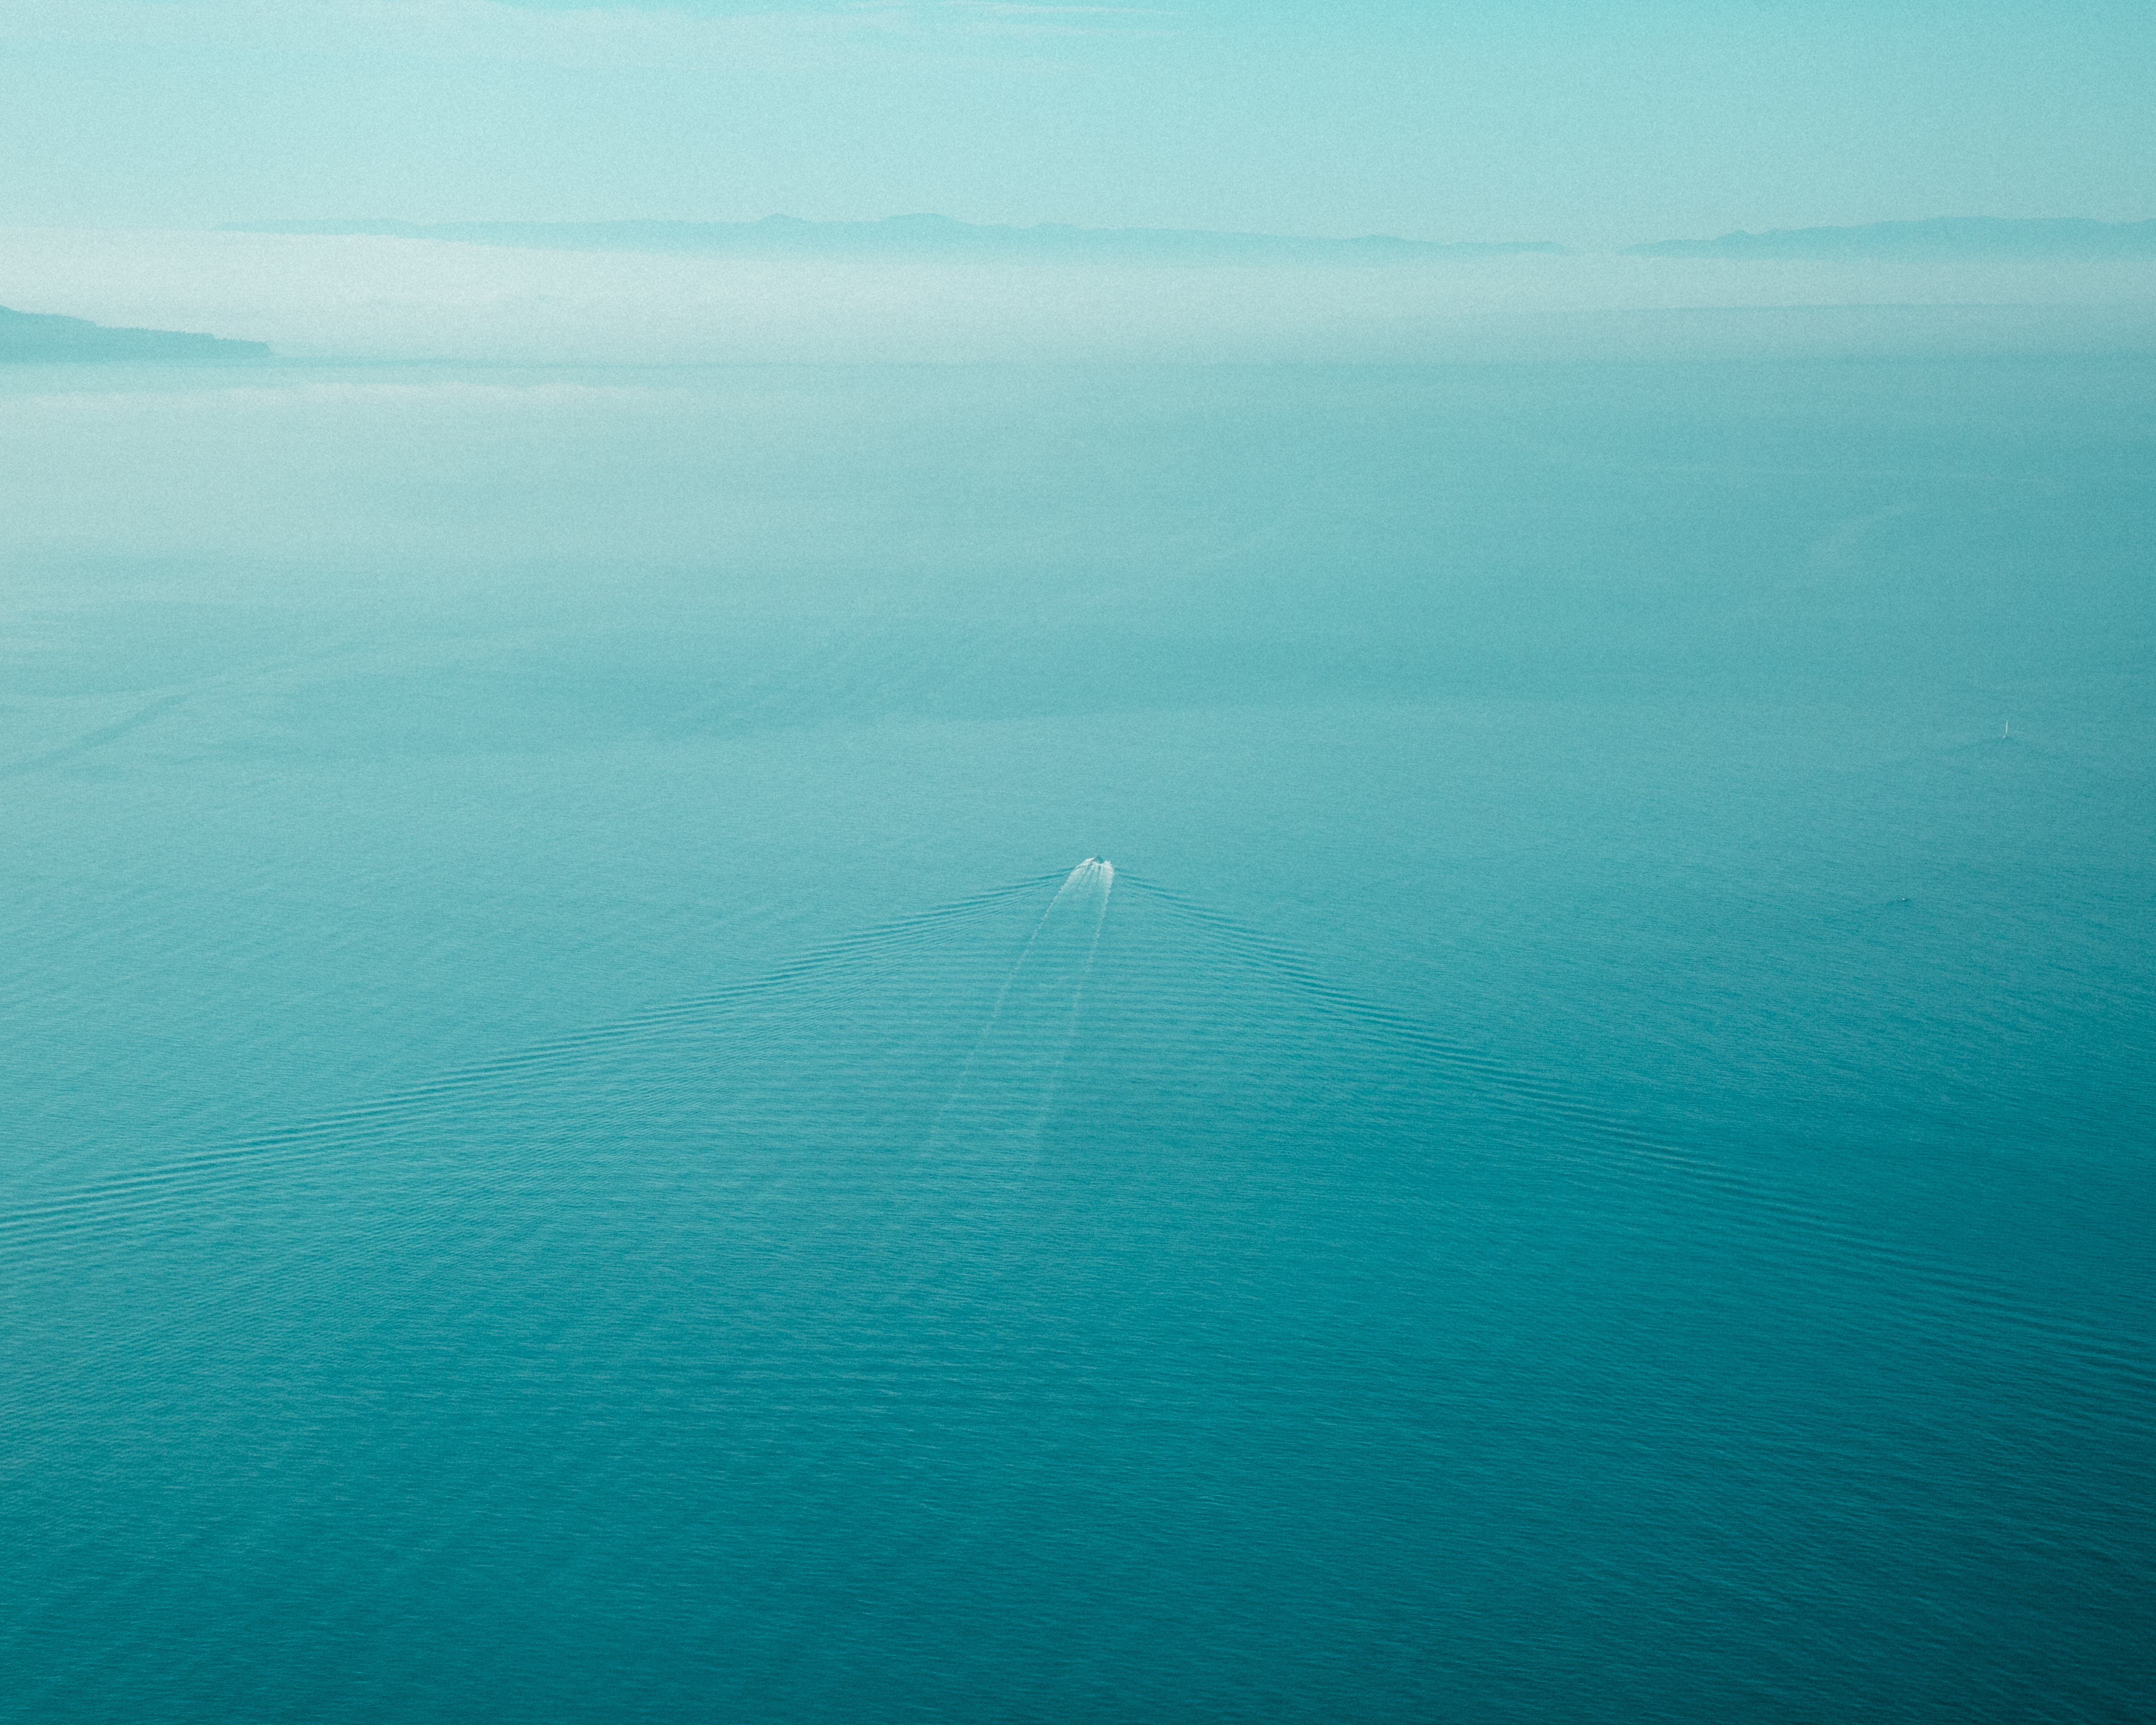 boat sailing through calm waters